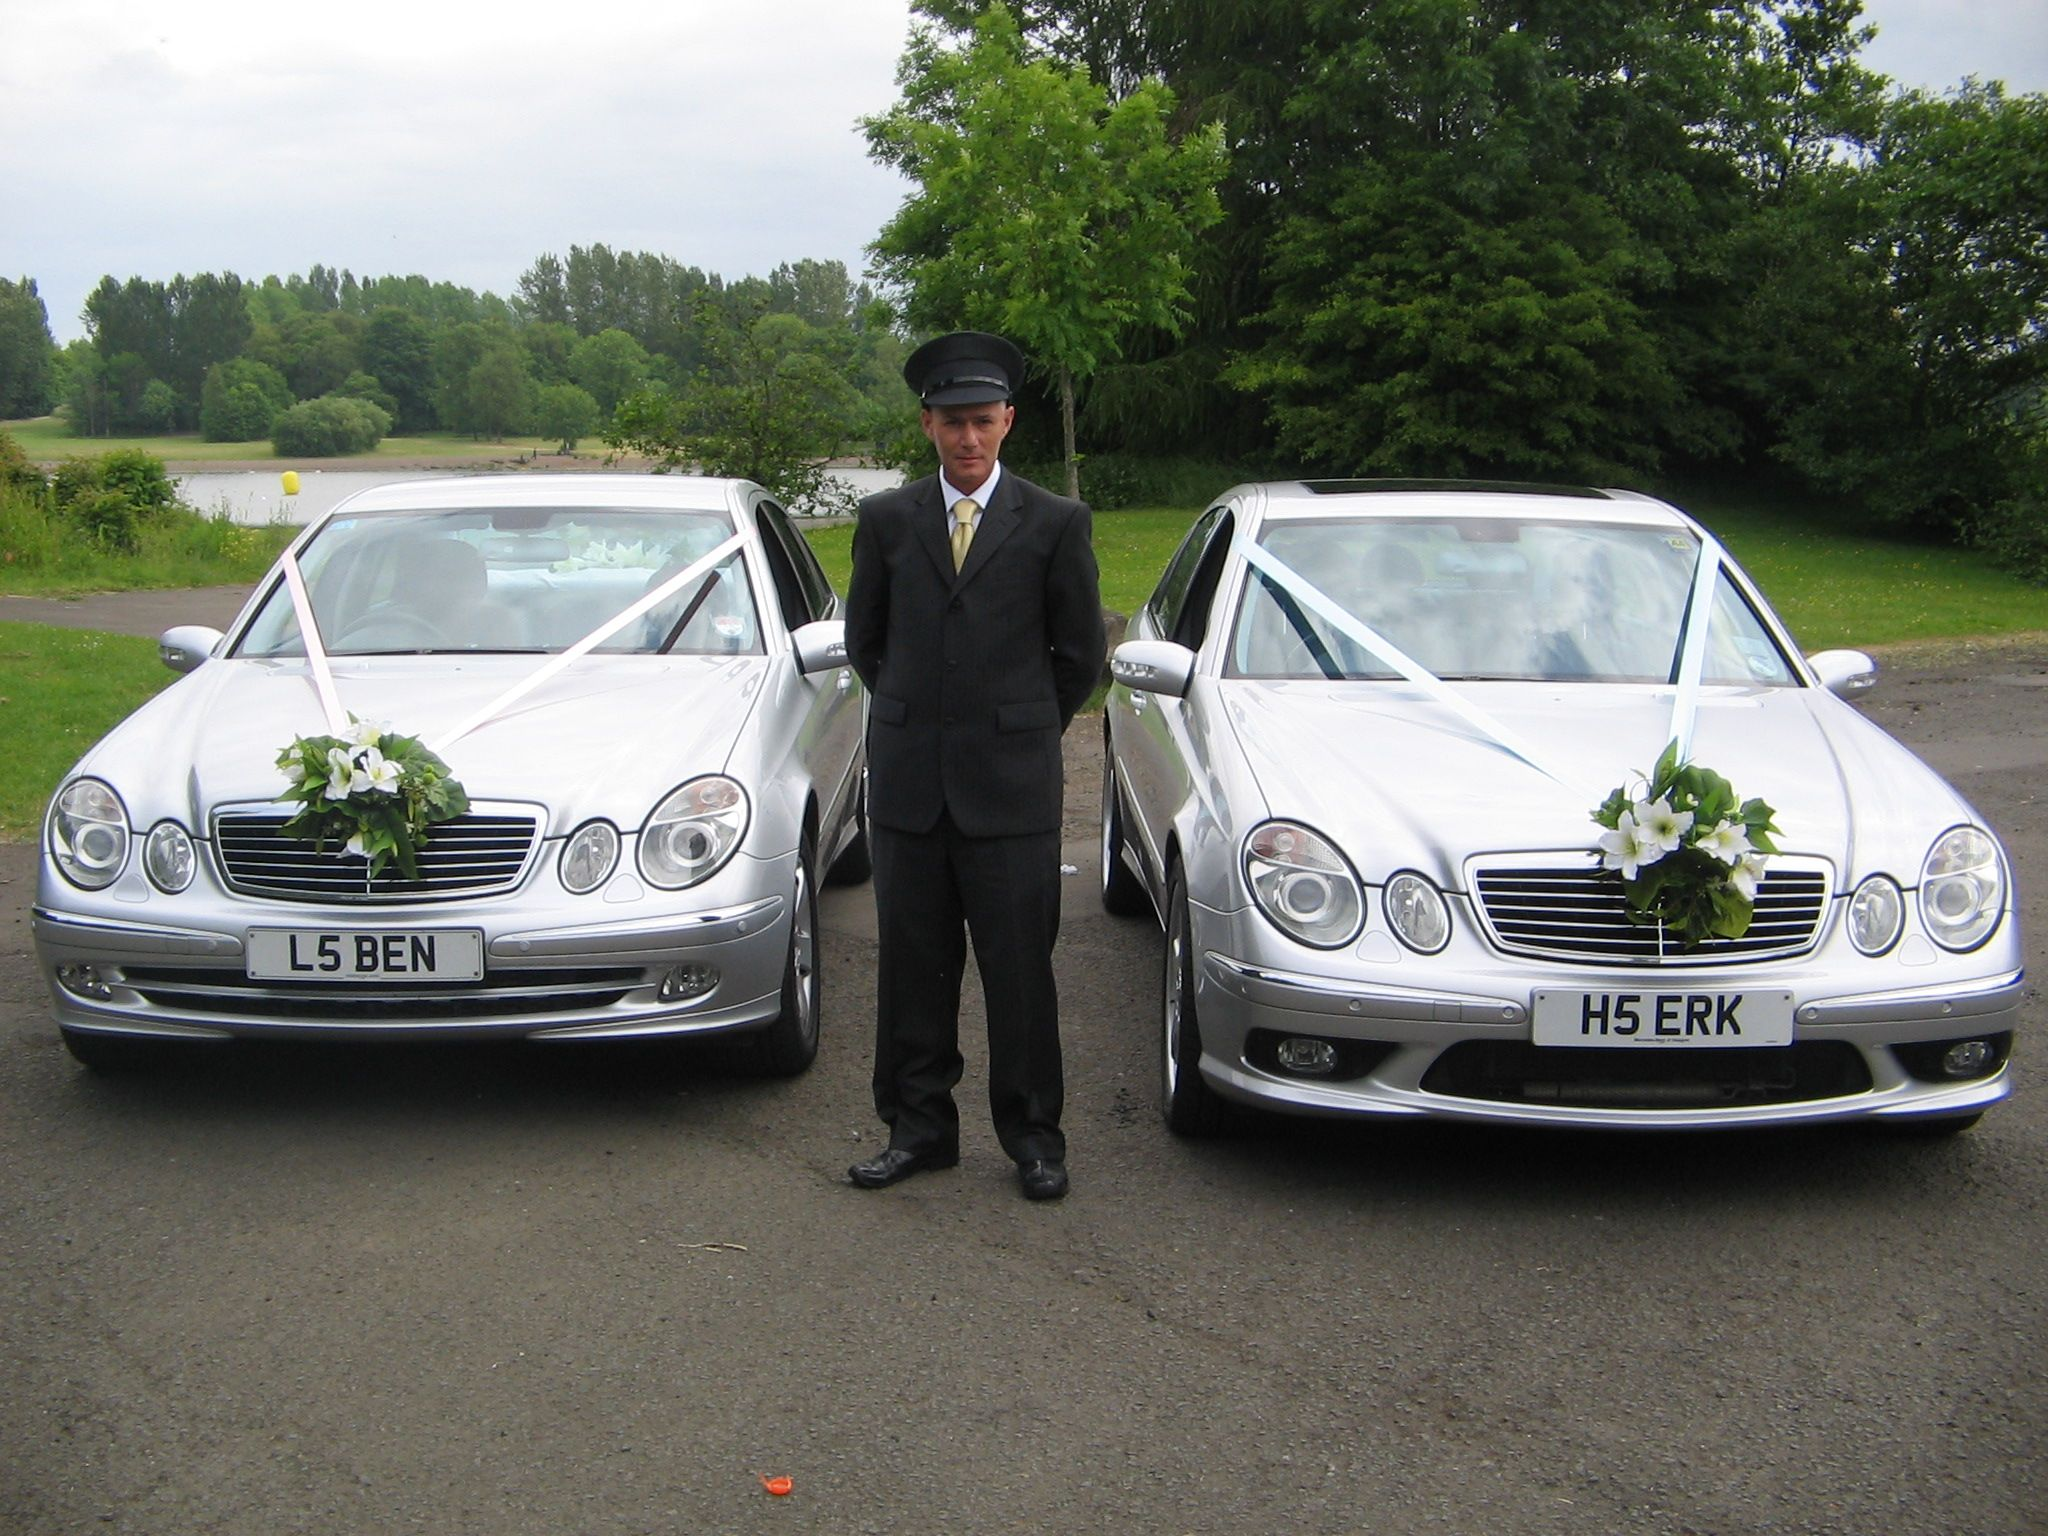 wedding car decorations ideas for more great ideas and information about our venues visit our